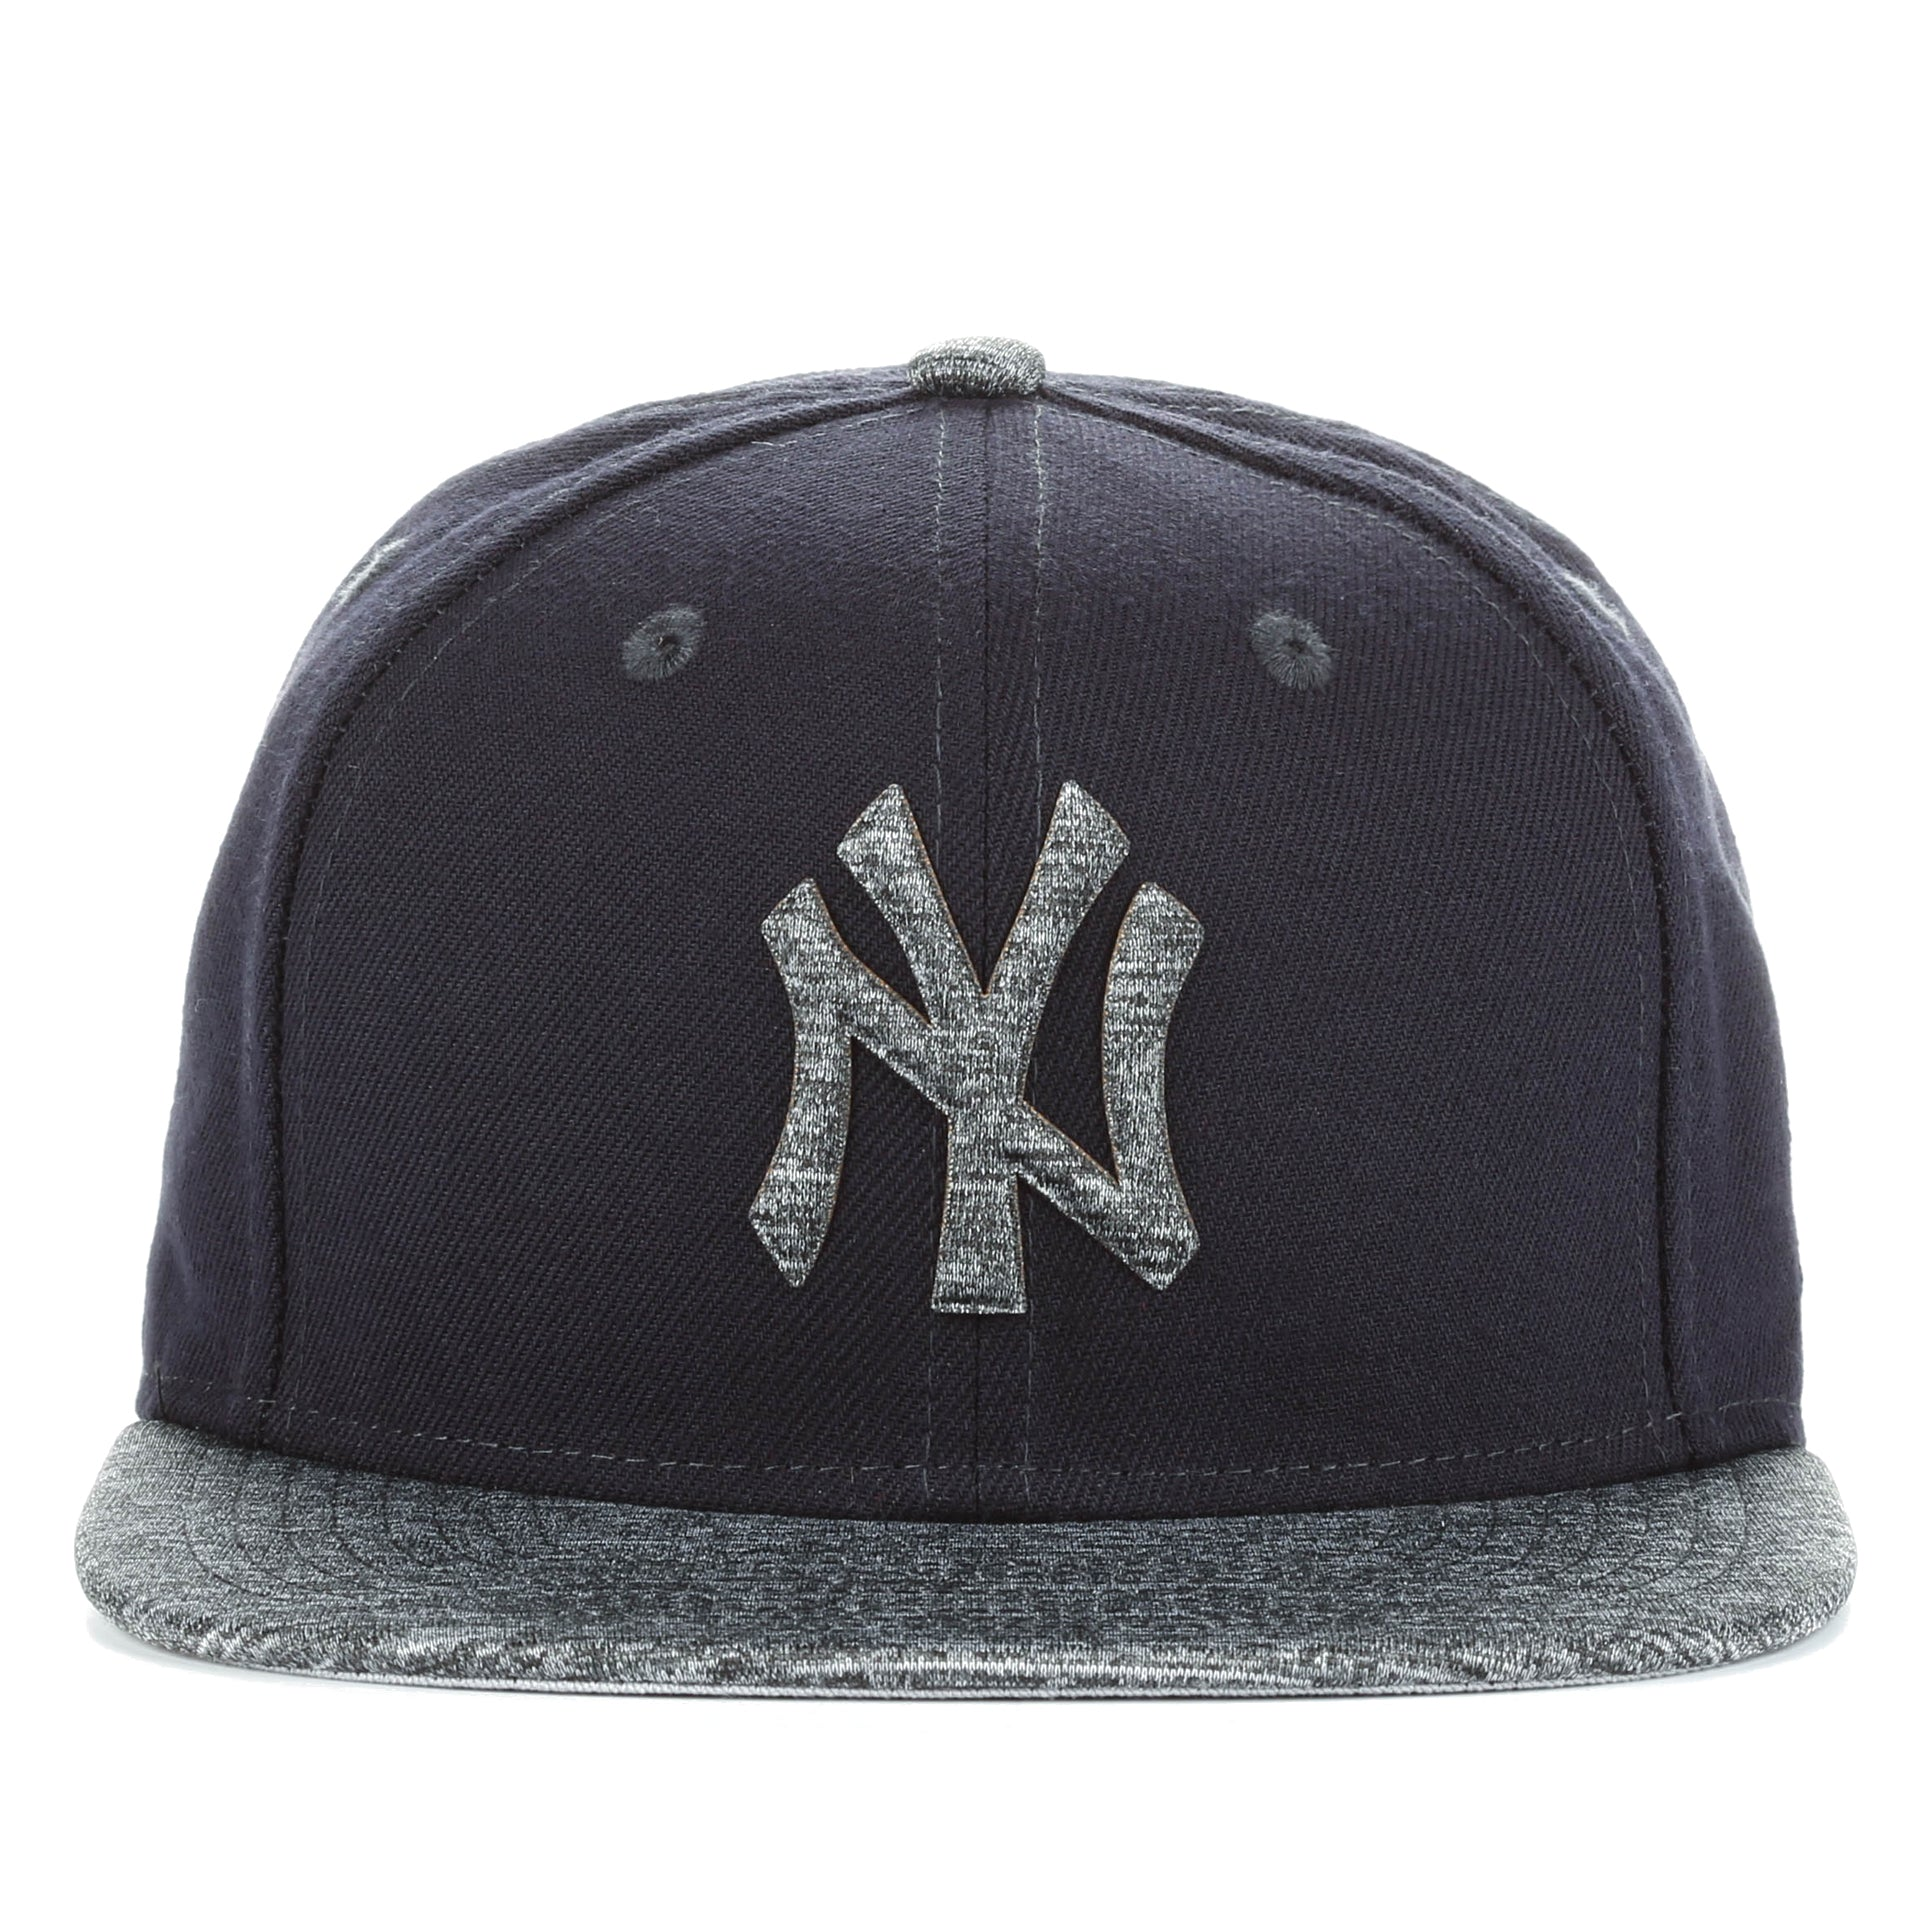 New Era 9Fifty Shadow Filled Snapback - New York Yankees Navy - New Star 26d72be6c2c8